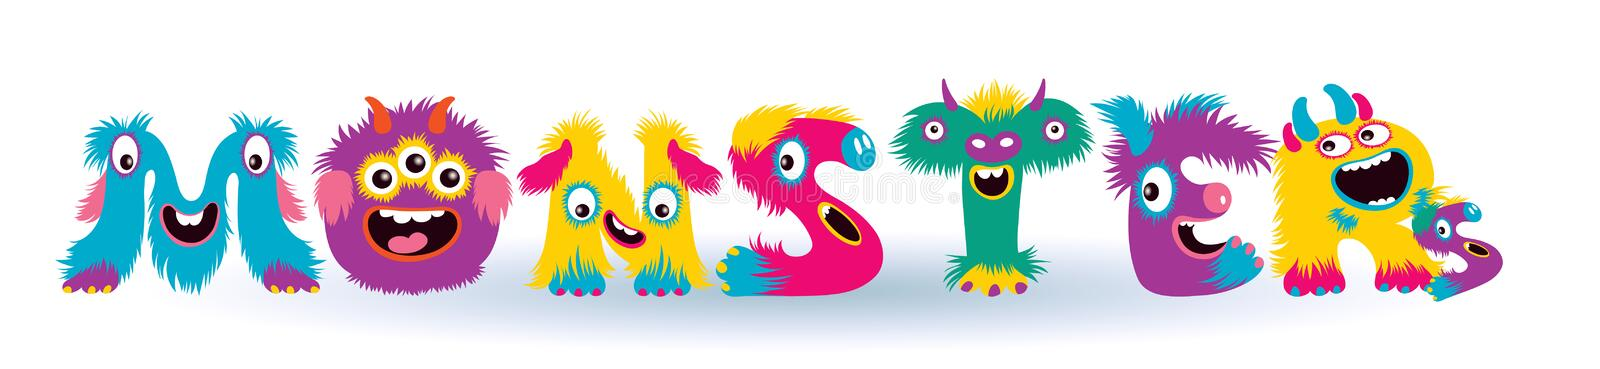 Cartoon children cute and funny monster letters royalty free stock photos